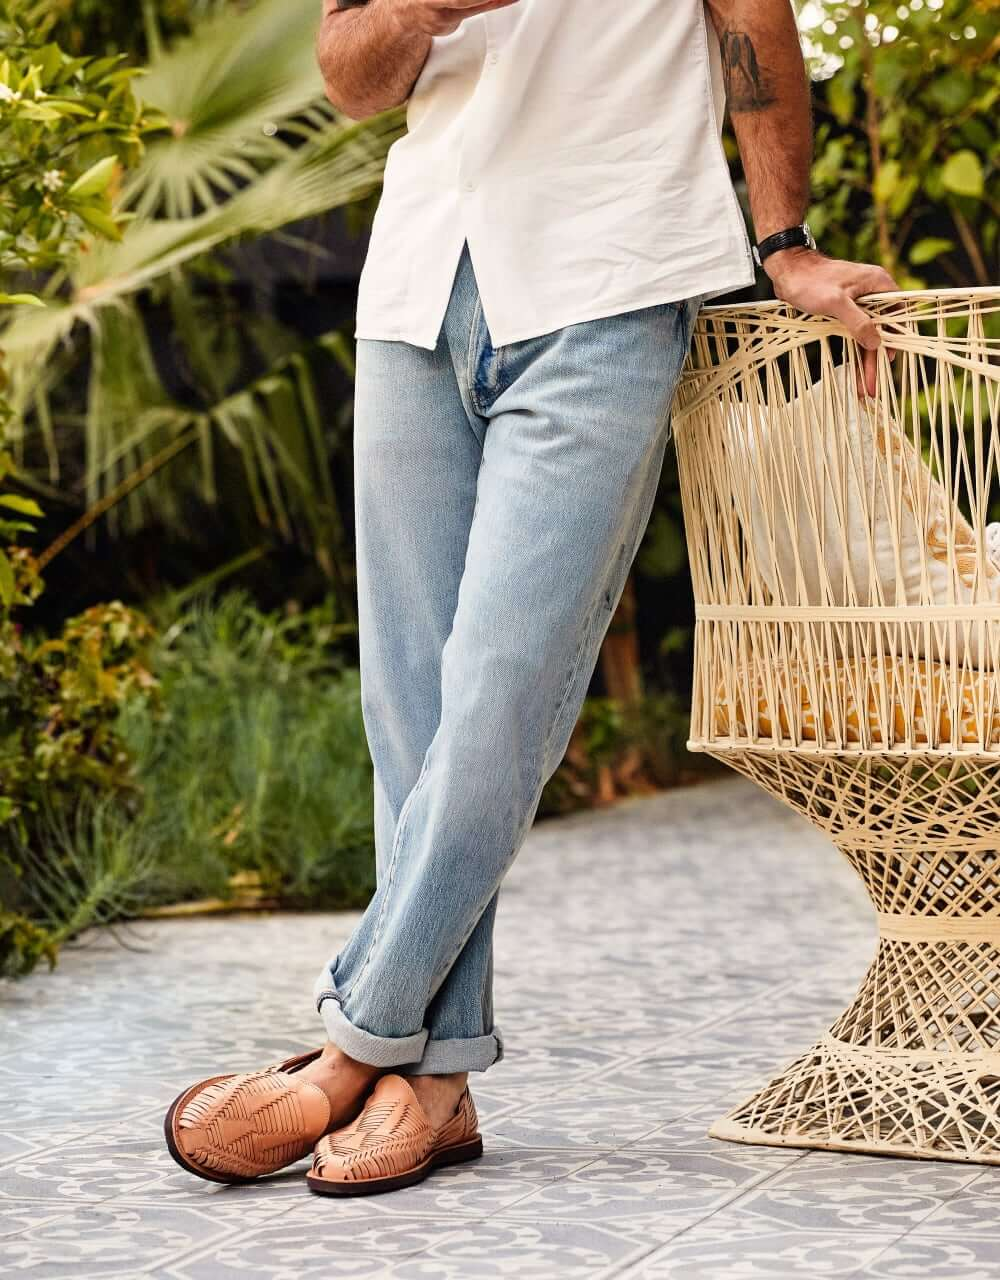 Men's outdoor picnic outfit inspiration